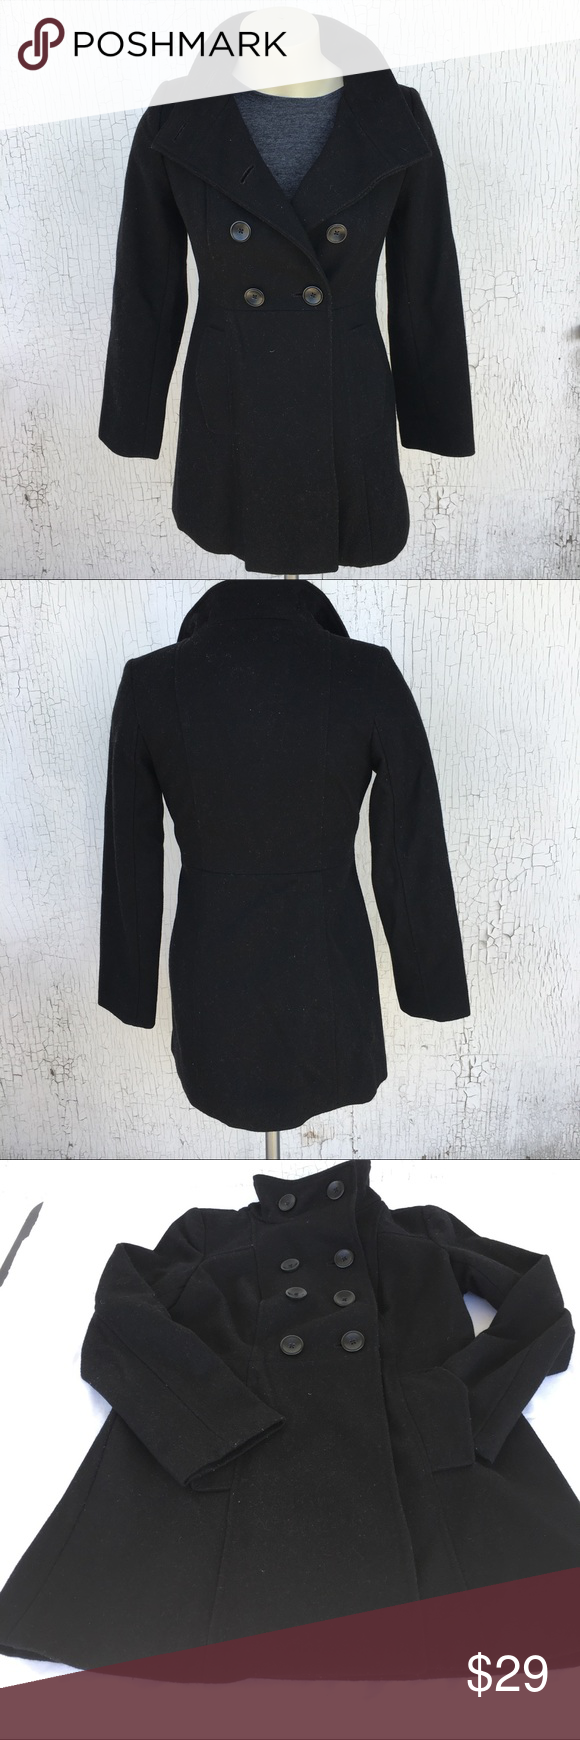 OLD NAVY Pea Coat - XS PETITE OLD NAVY Pea Coat Extra Small Petite ...